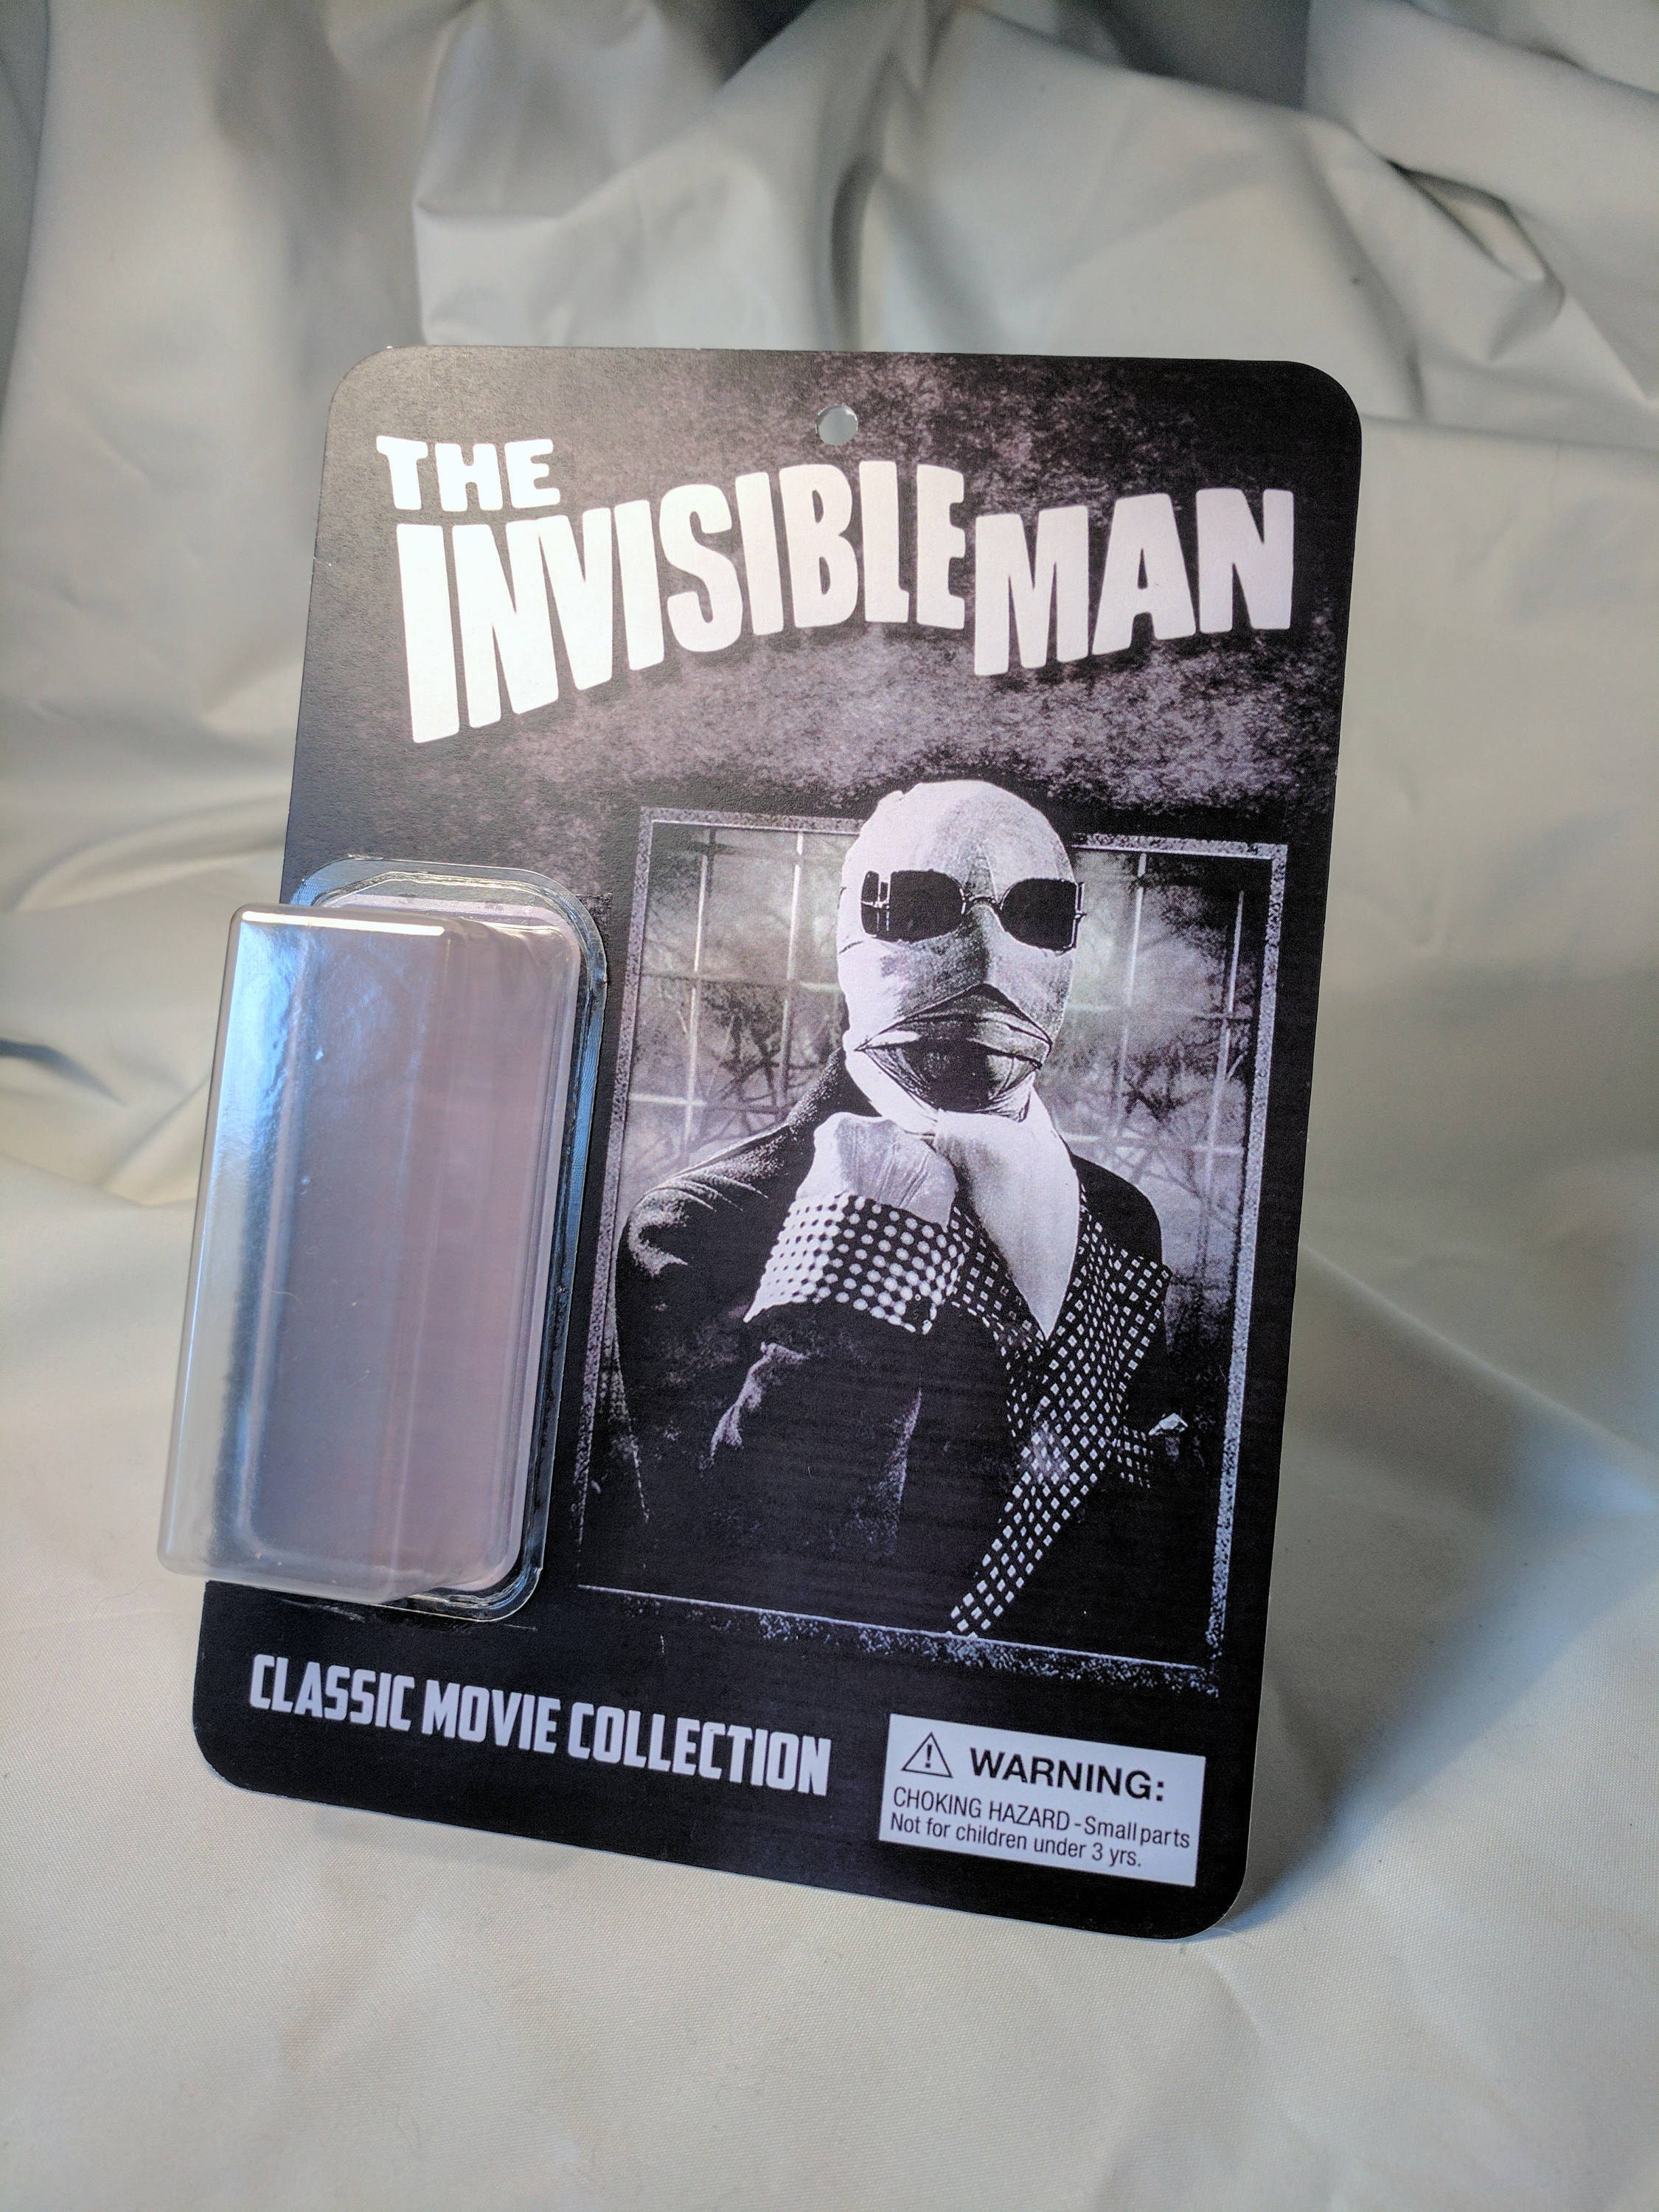 The Invisible Man action figure